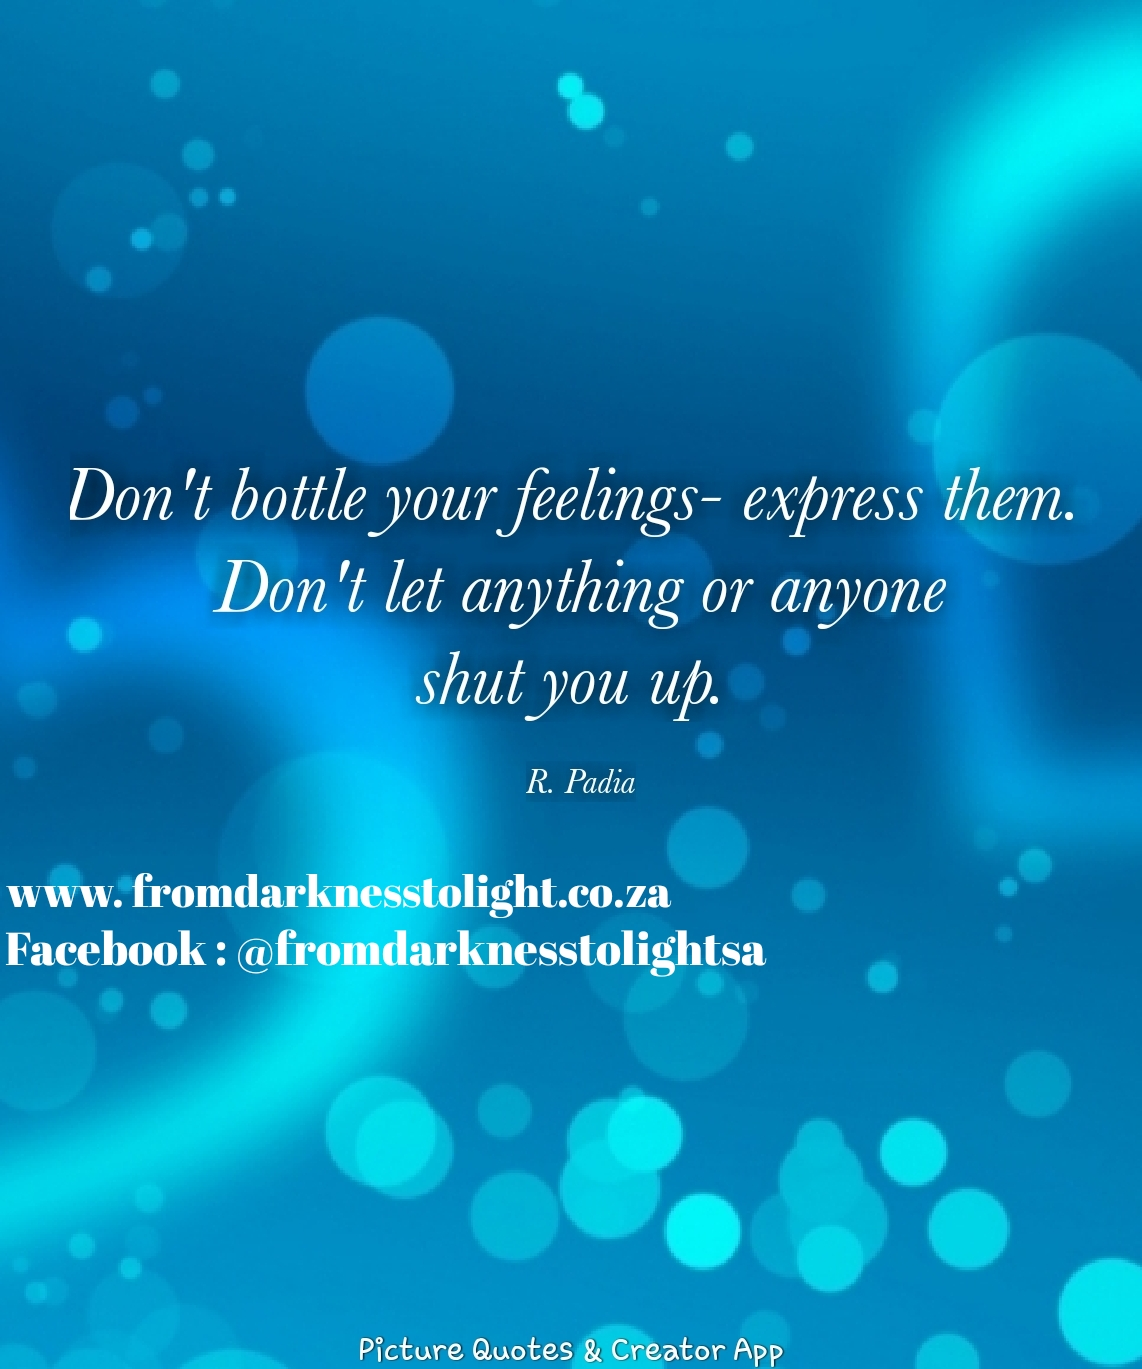 R Padia - Don't bottle your feelings - express them, Dont let anything or anyone shut you up